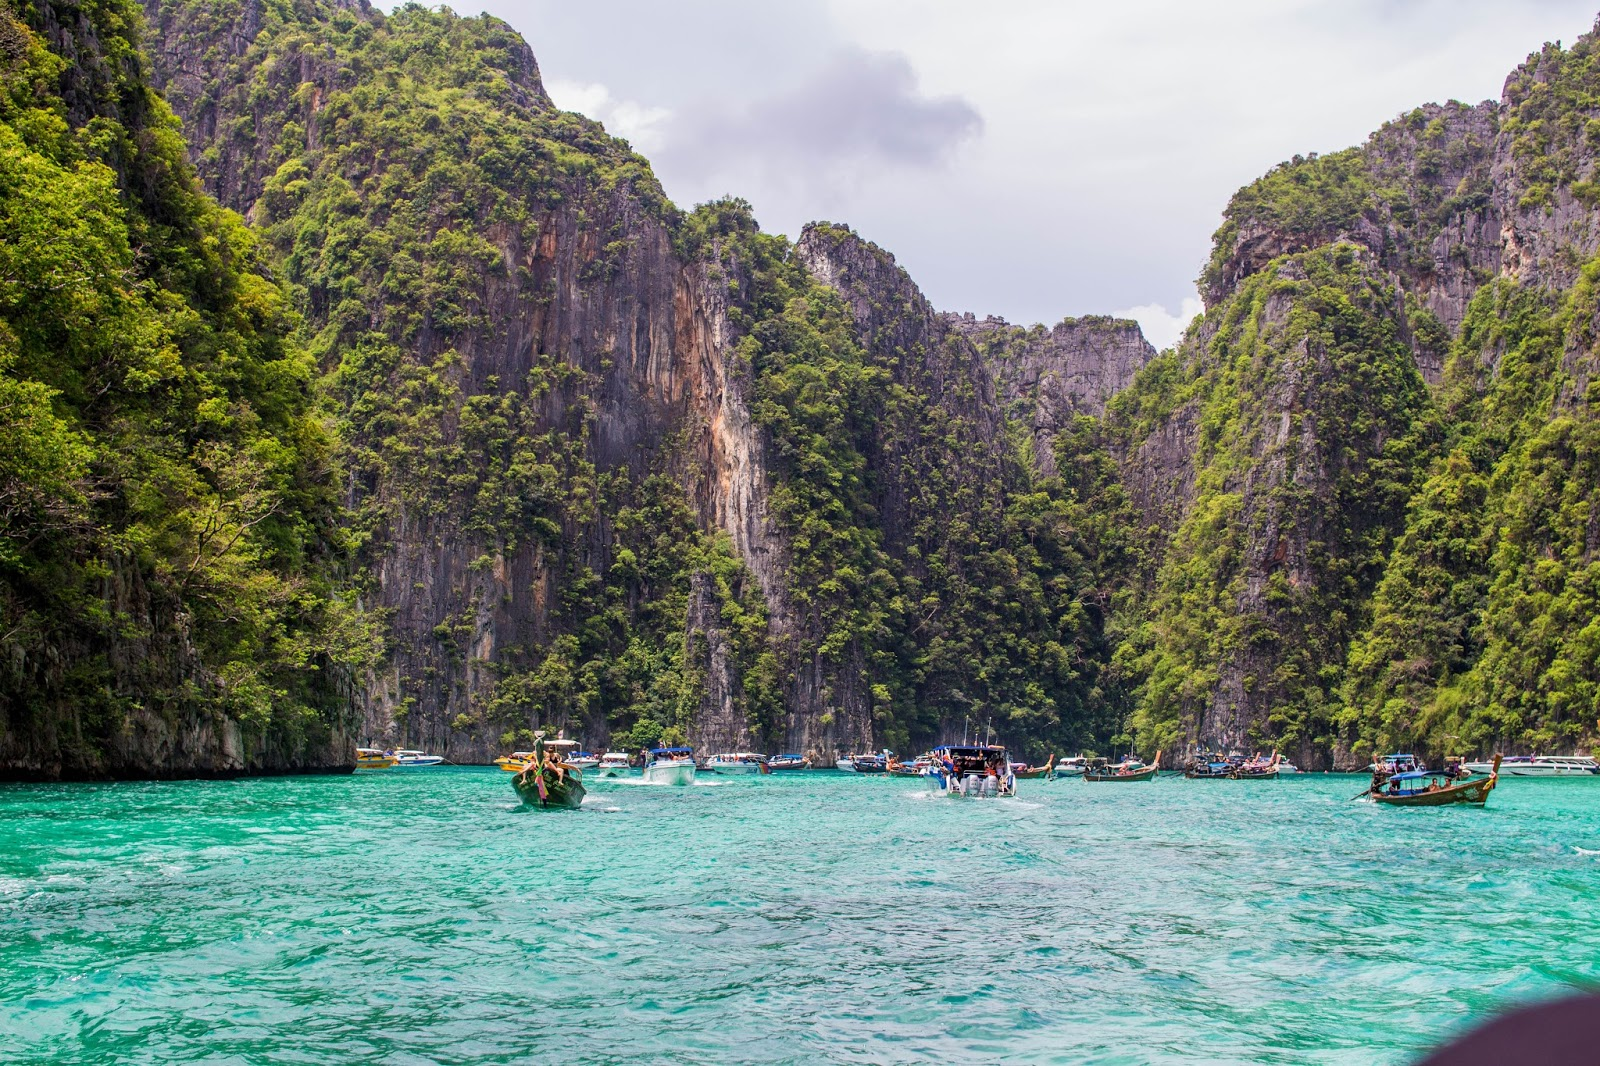 phuket-travel-koh-phi-phi-leh-dc-blog-travelblog